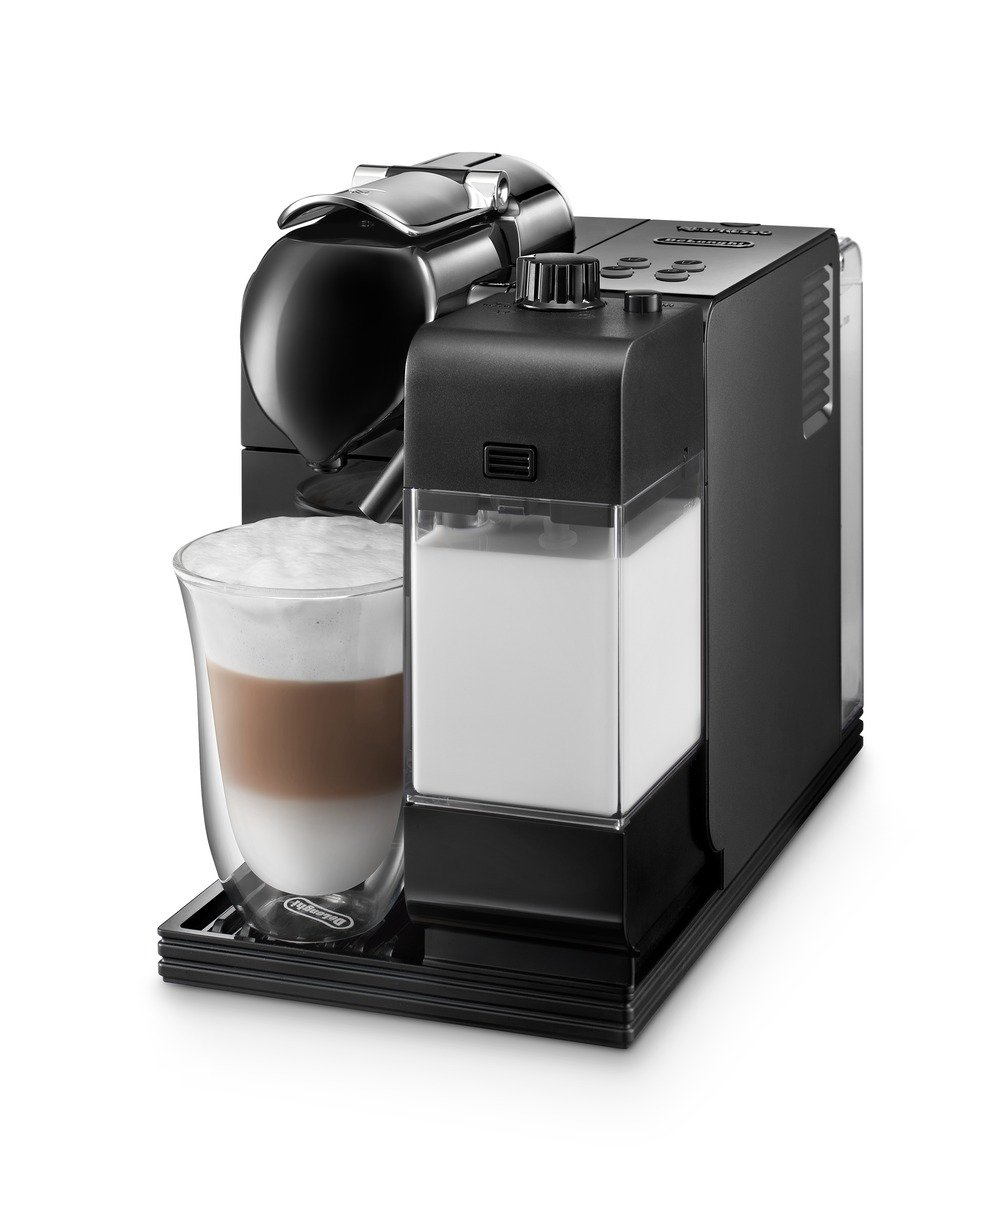 DeLonghi EN520BK Lattissima Plus Espresso Machine, Black